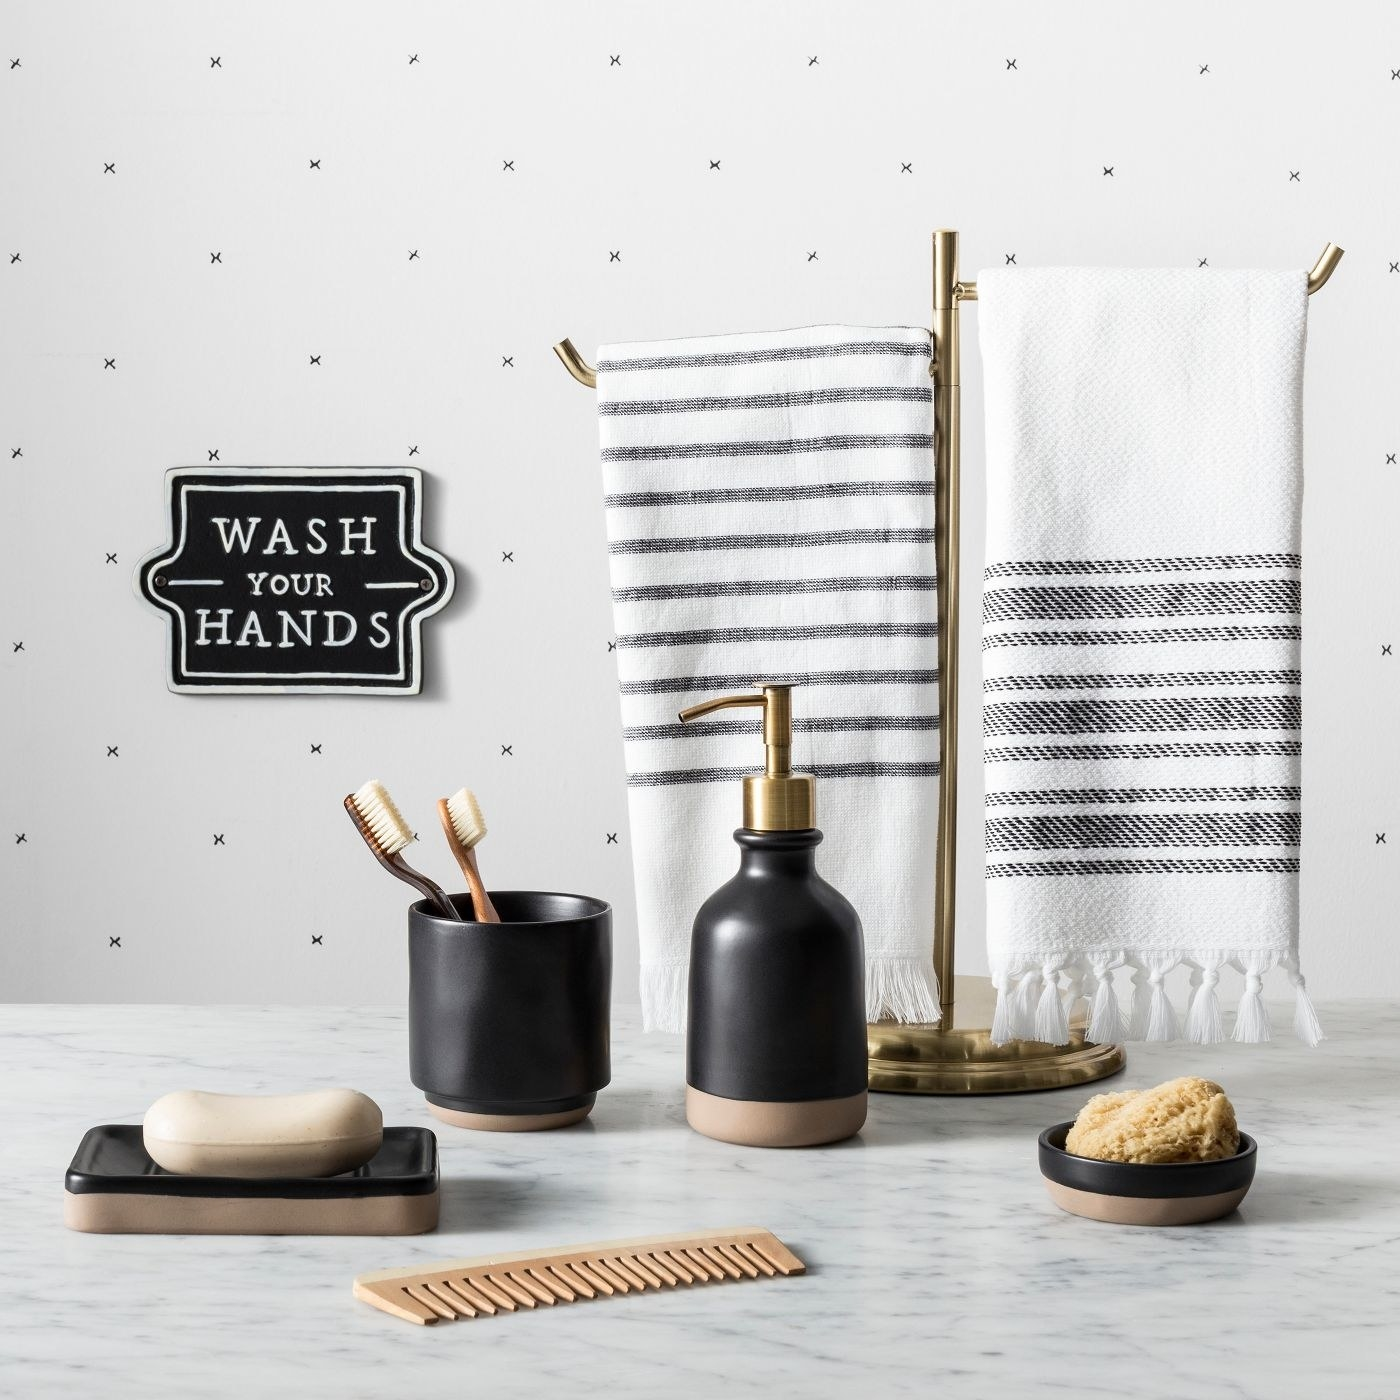 The black and white 'Wash Your Hands' sign hanging on the wall